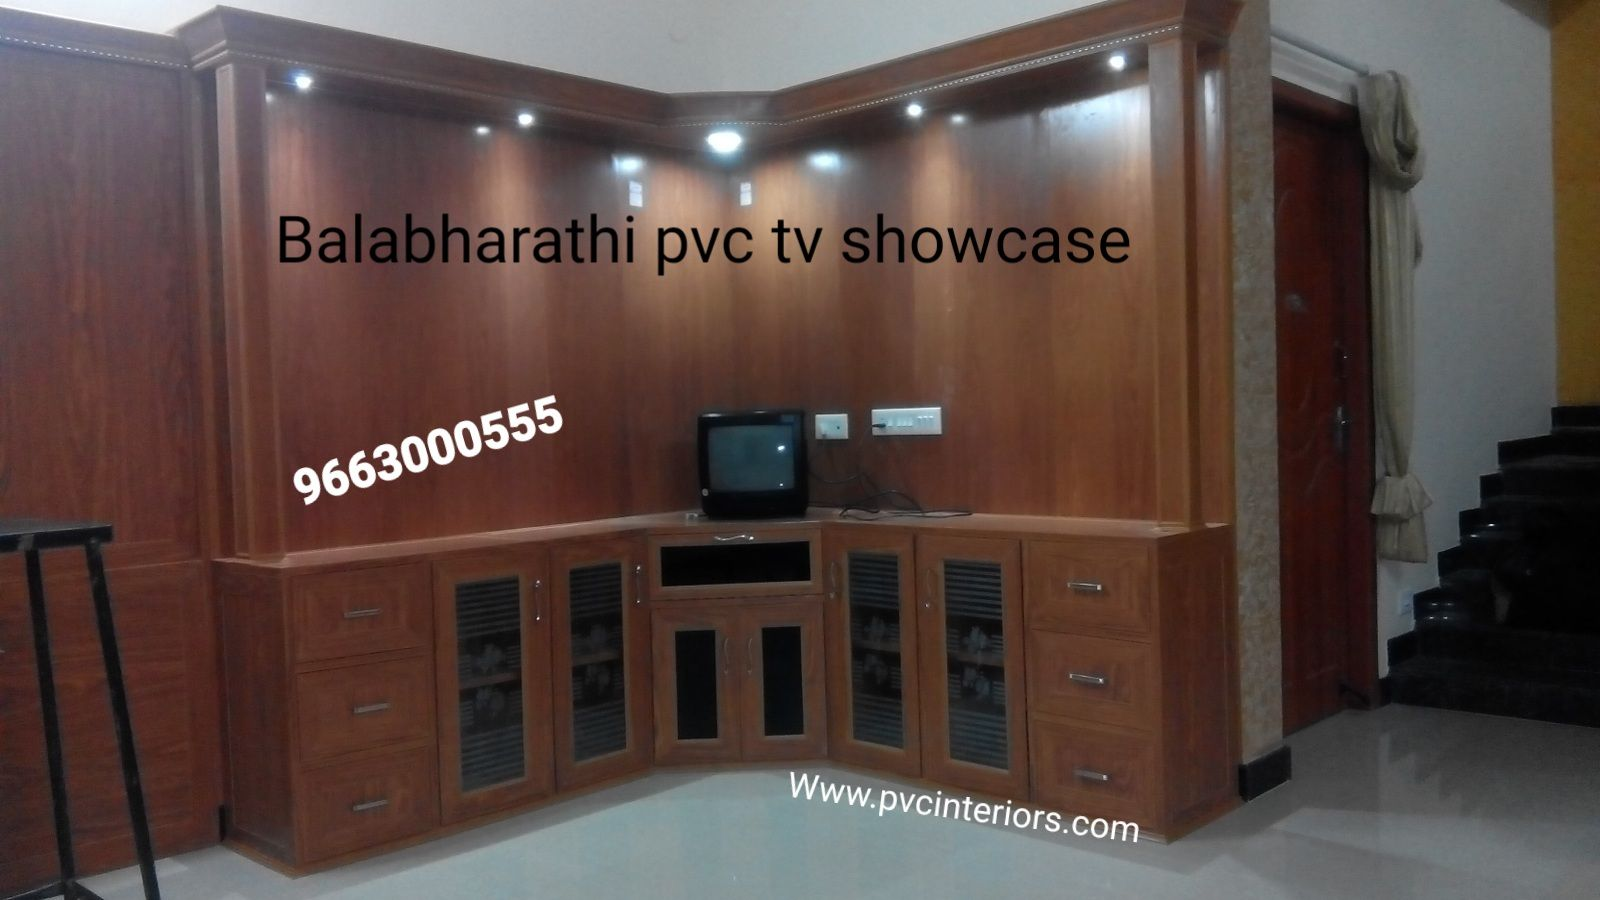 Pvc Tv Showcase Tv Cabinet Furniture Online Balabharathi Balabharathi